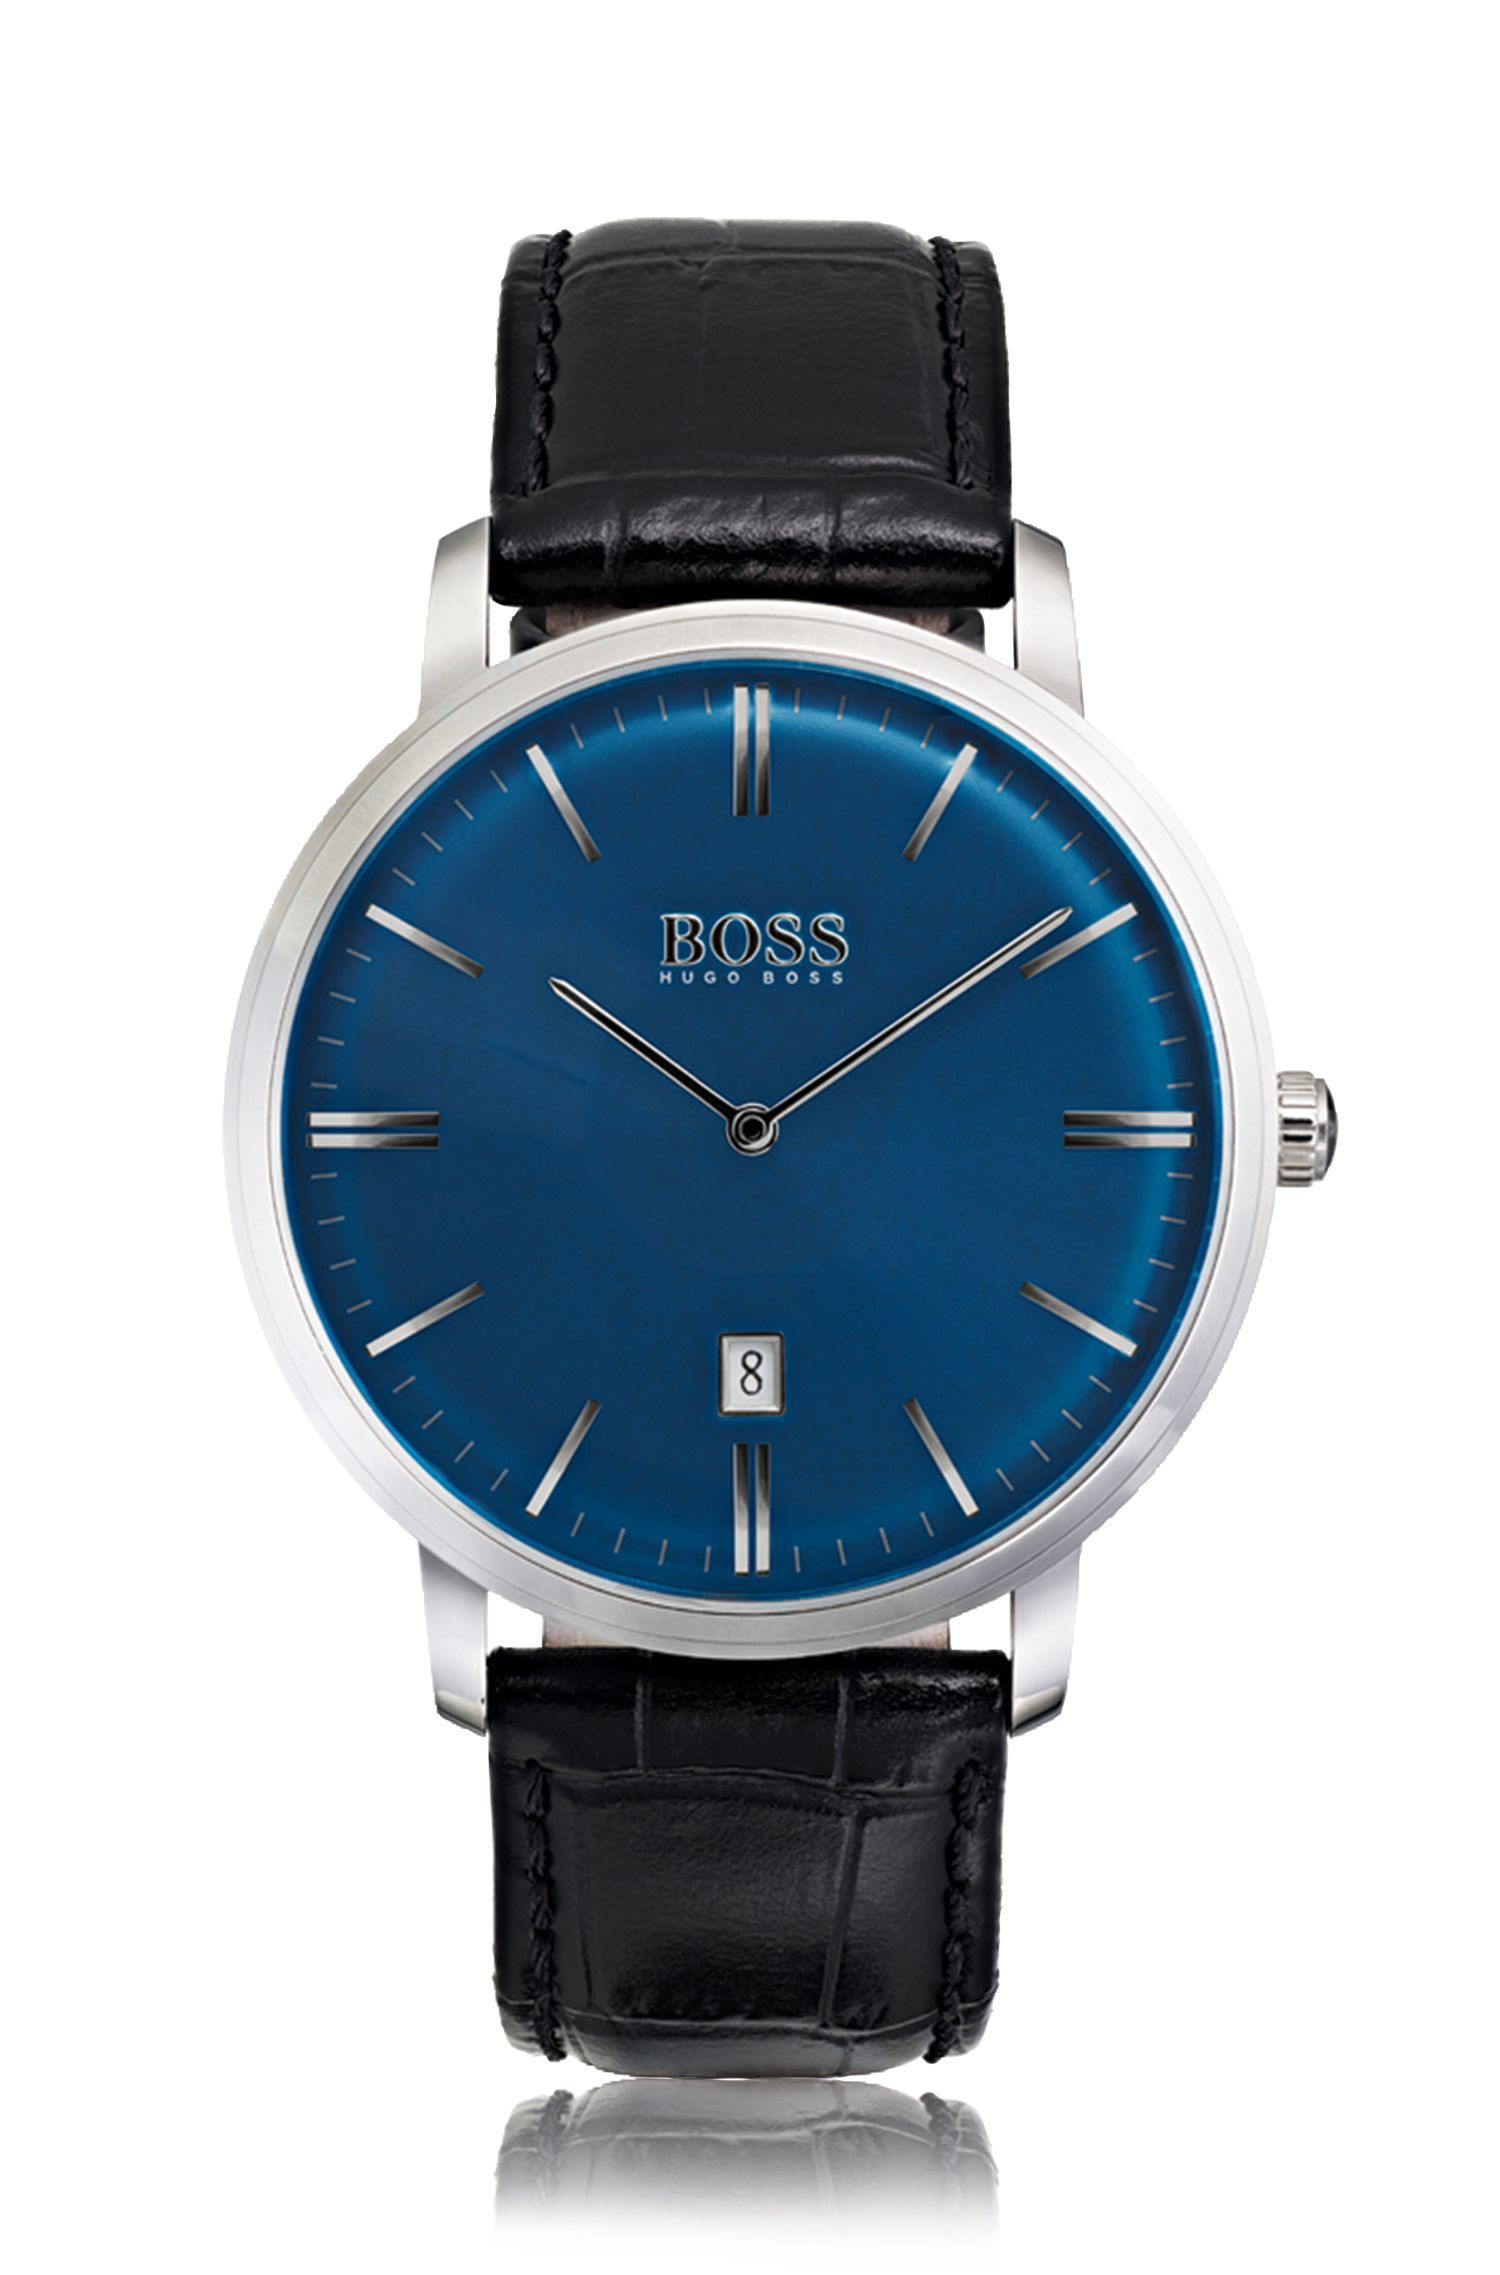 Stainless-steel watch with sunray blue dial and leather strap